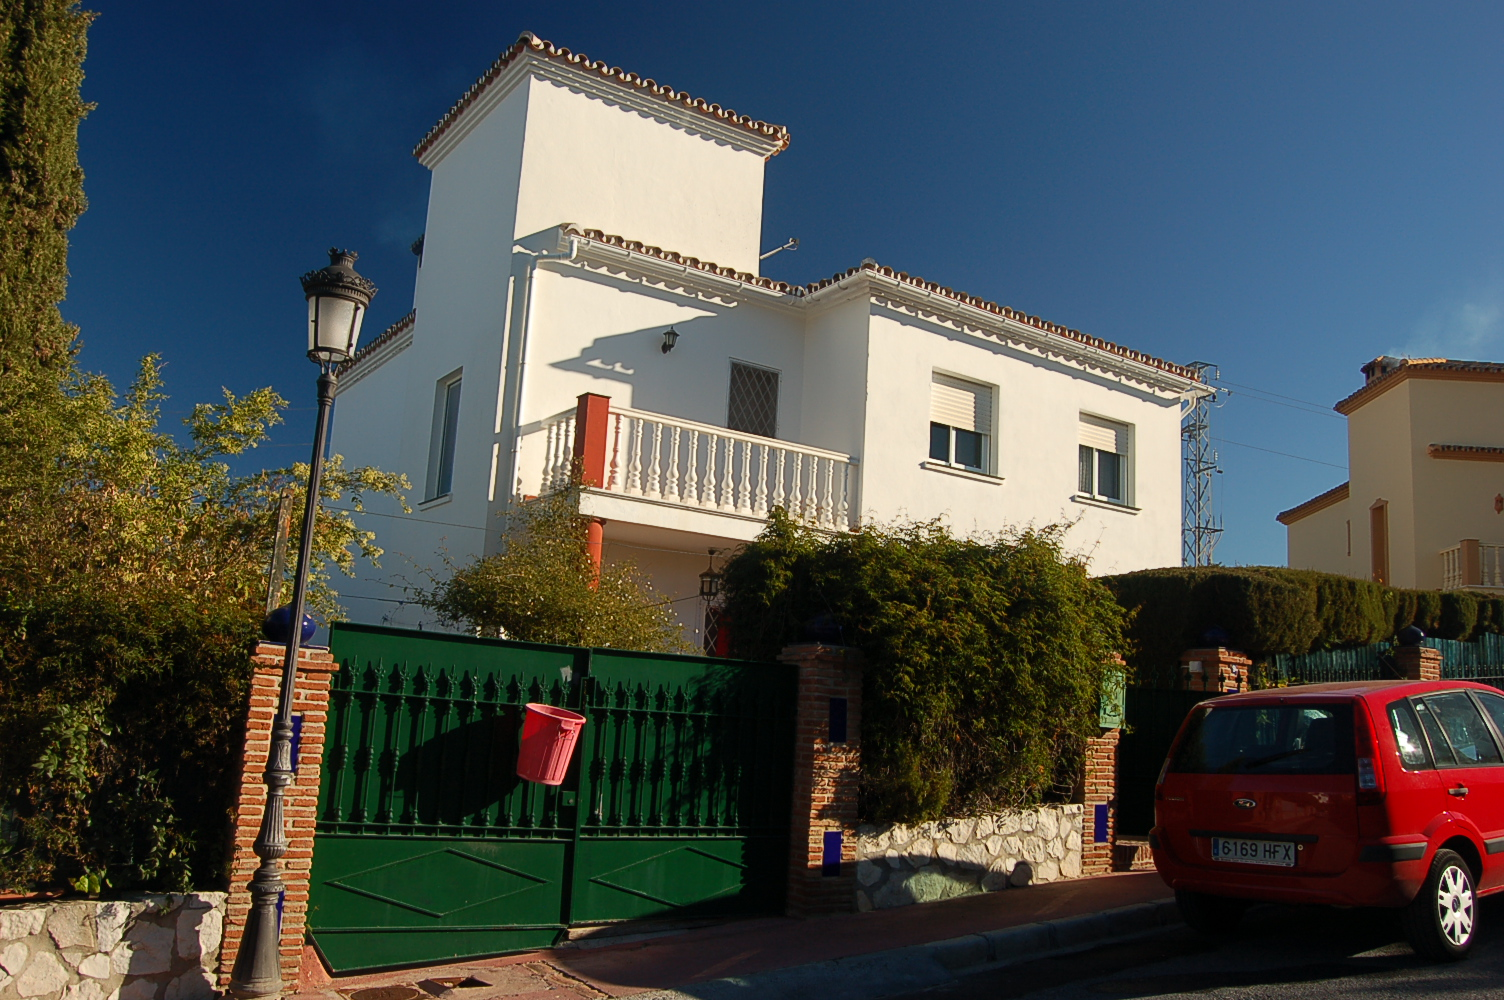 RiS 27 Large family villa in Coin – 325,000€